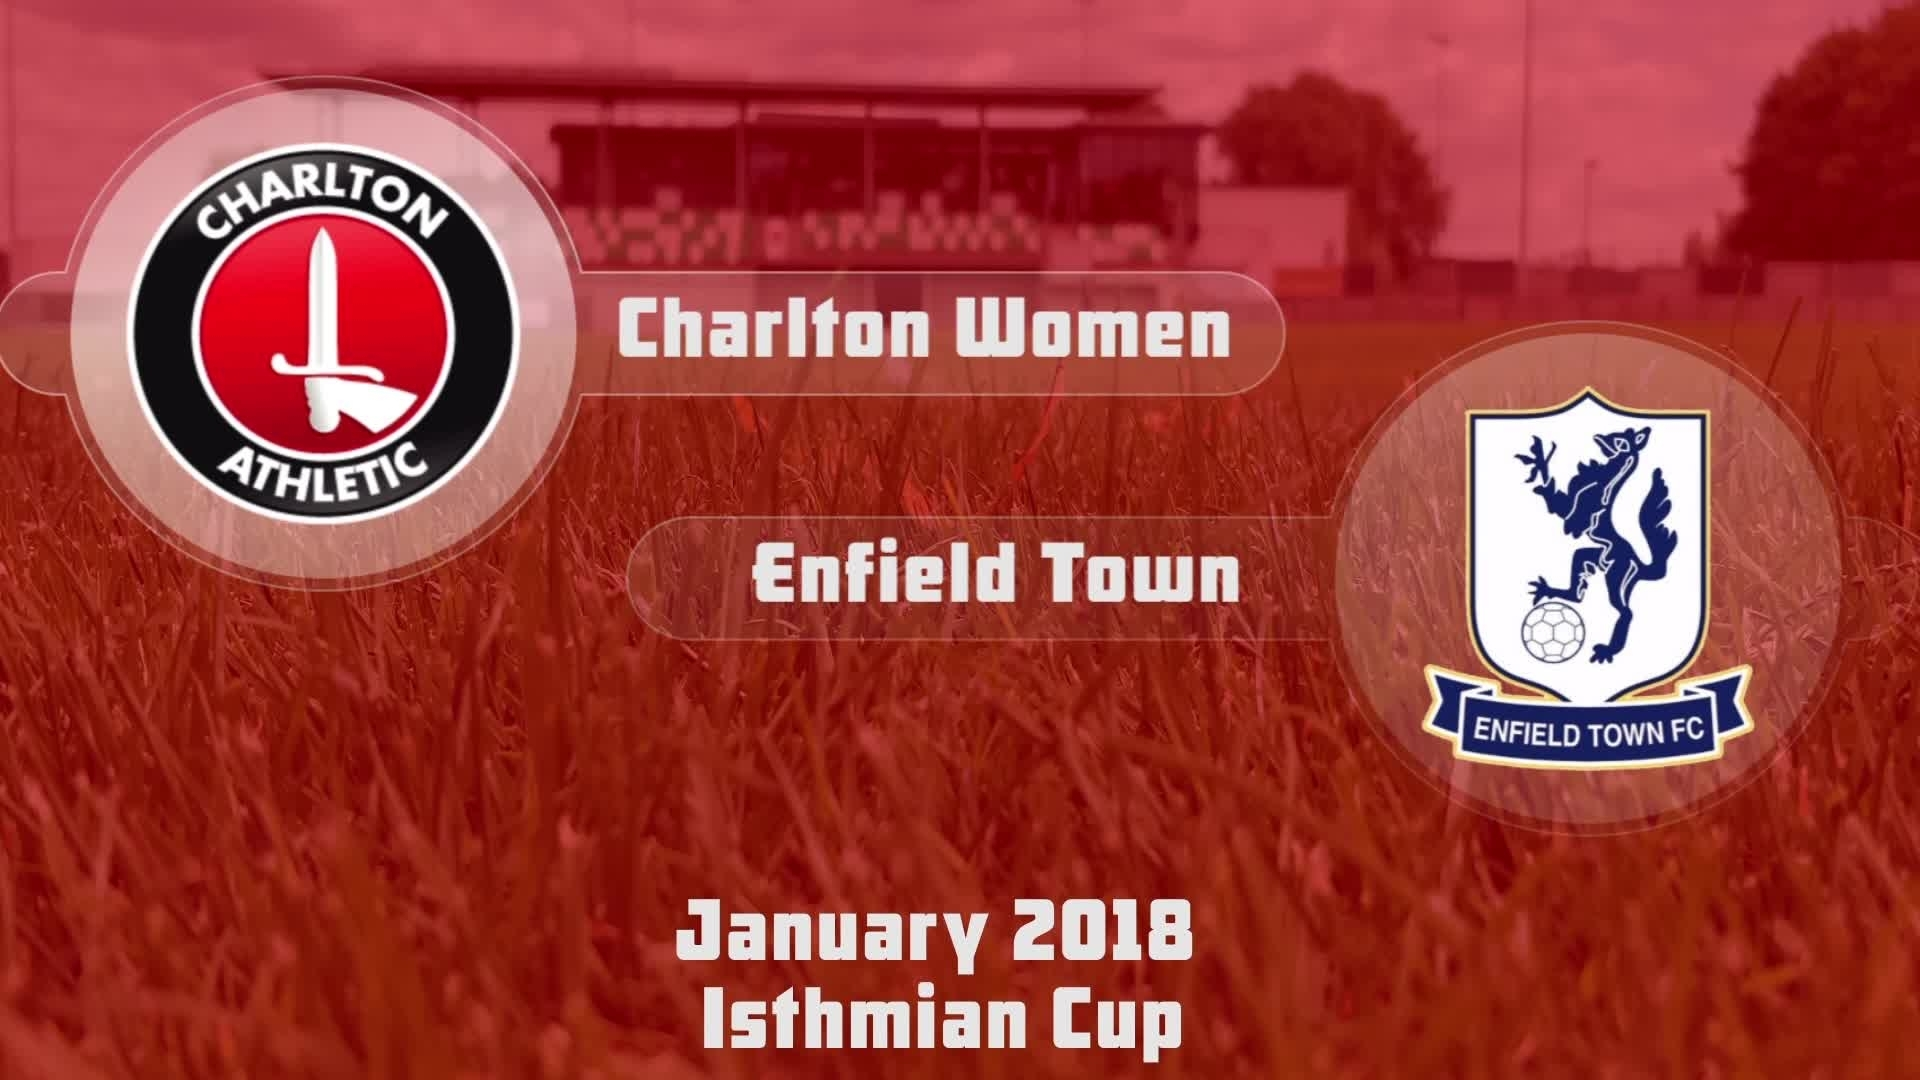 WOMEN'S HIGHLIGHTS | Charlton 5 Enfield Town 0 (Isthmian Cup Jan 2018)